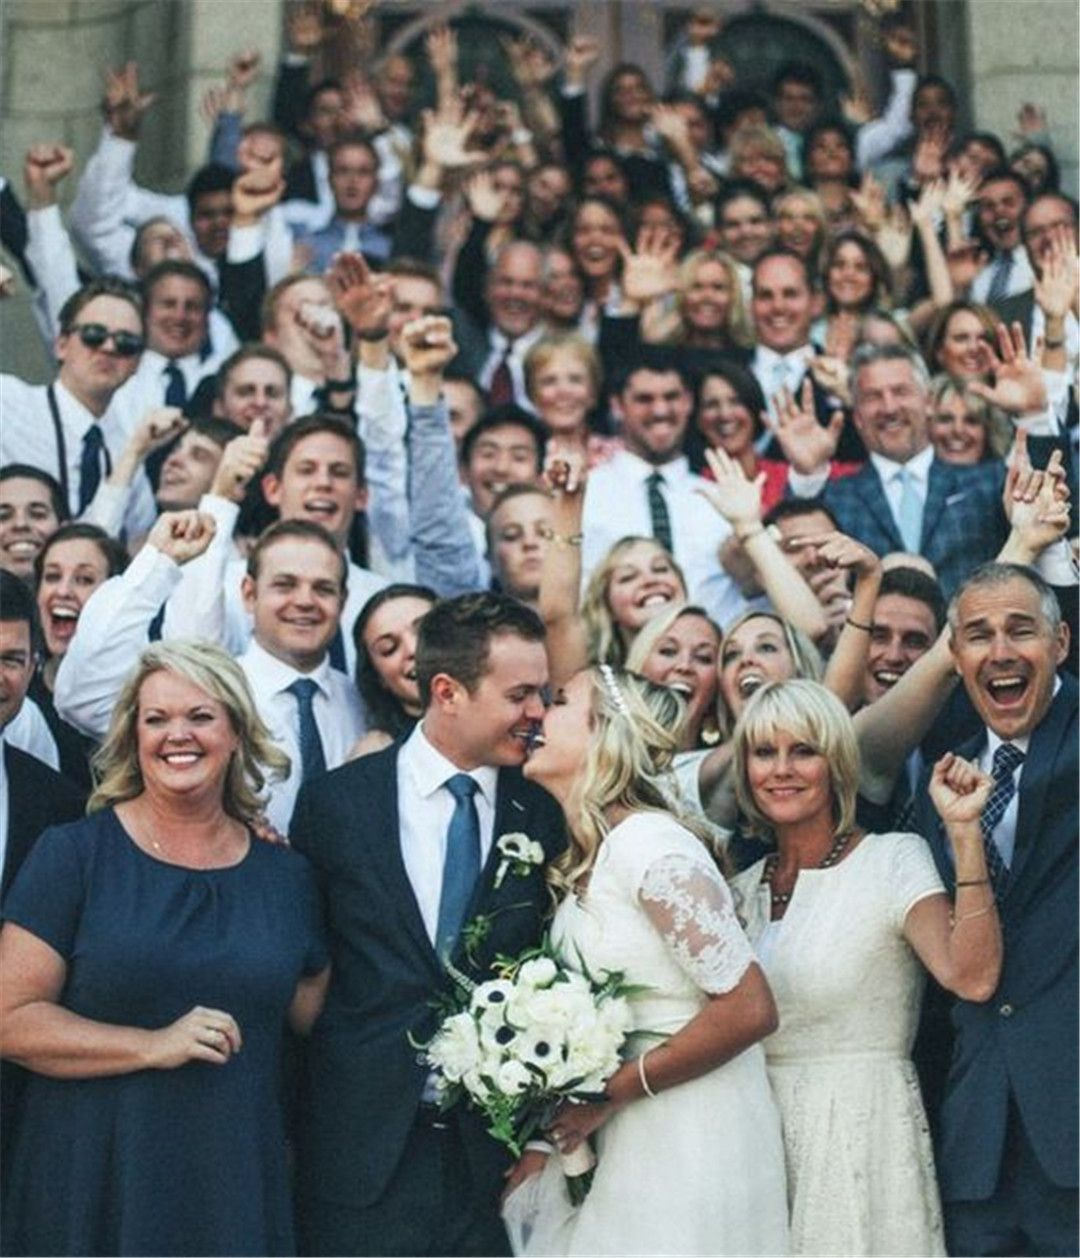 20 Fun Wedding Day Group Photo Ideas That Will Outshine